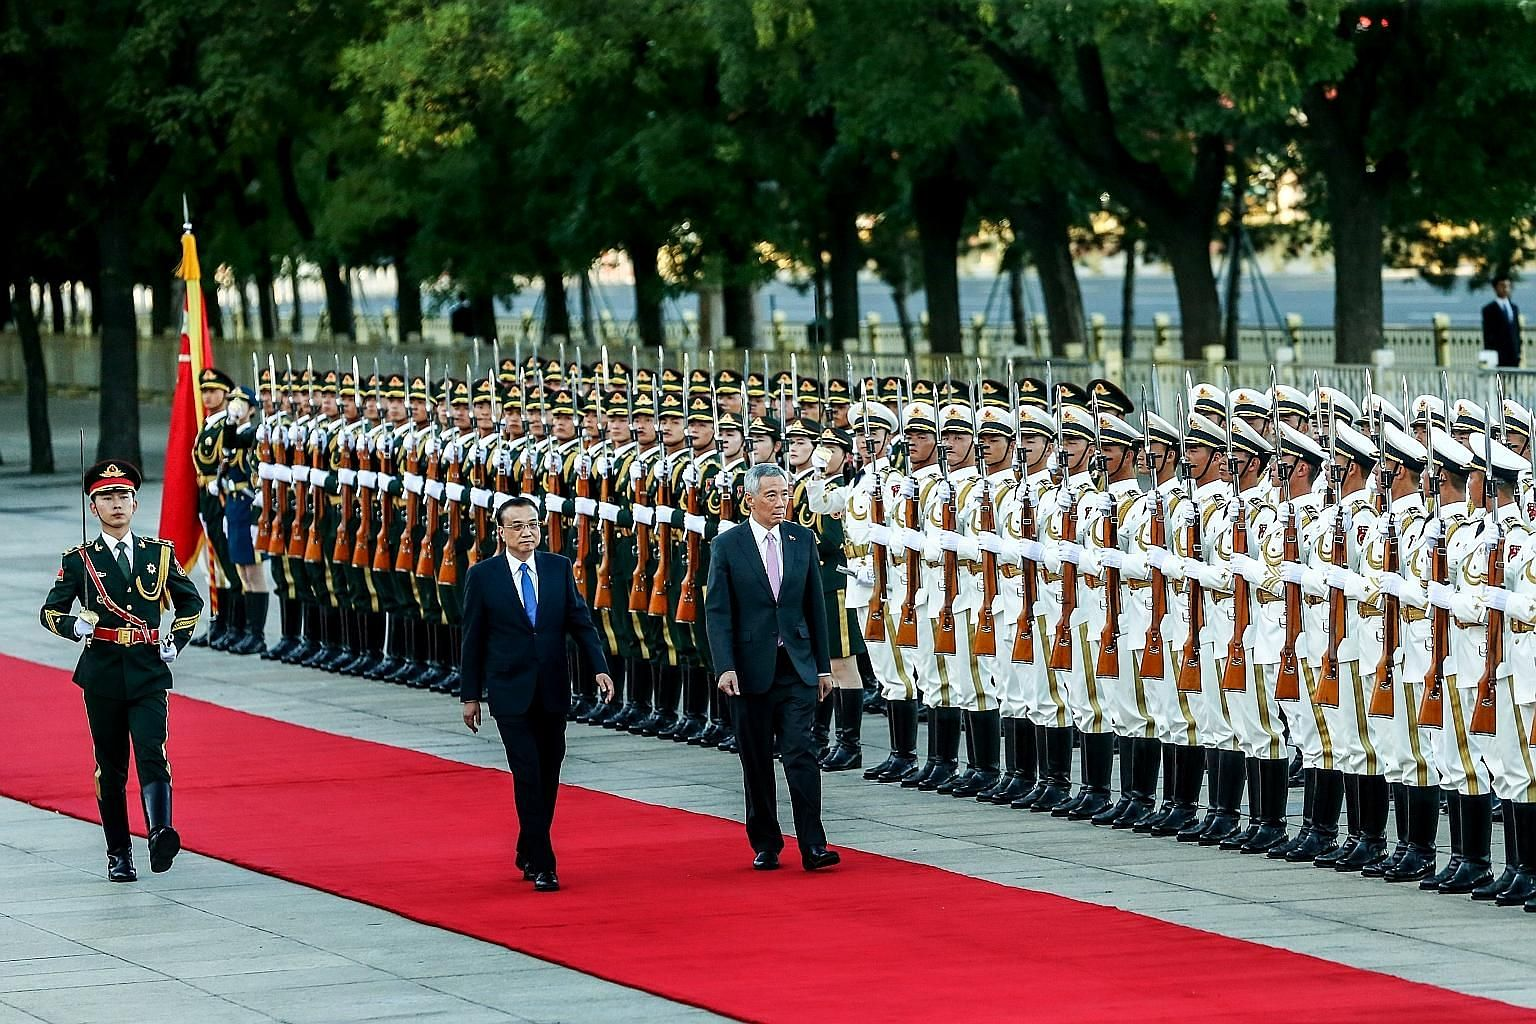 Prime Minister Lee Hsien Loong and Chinese Premier Li Keqiang inspecting the guard of honour at a welcome ceremony in front of the Great Hall of the People before their meeting in Beijing yesterday.